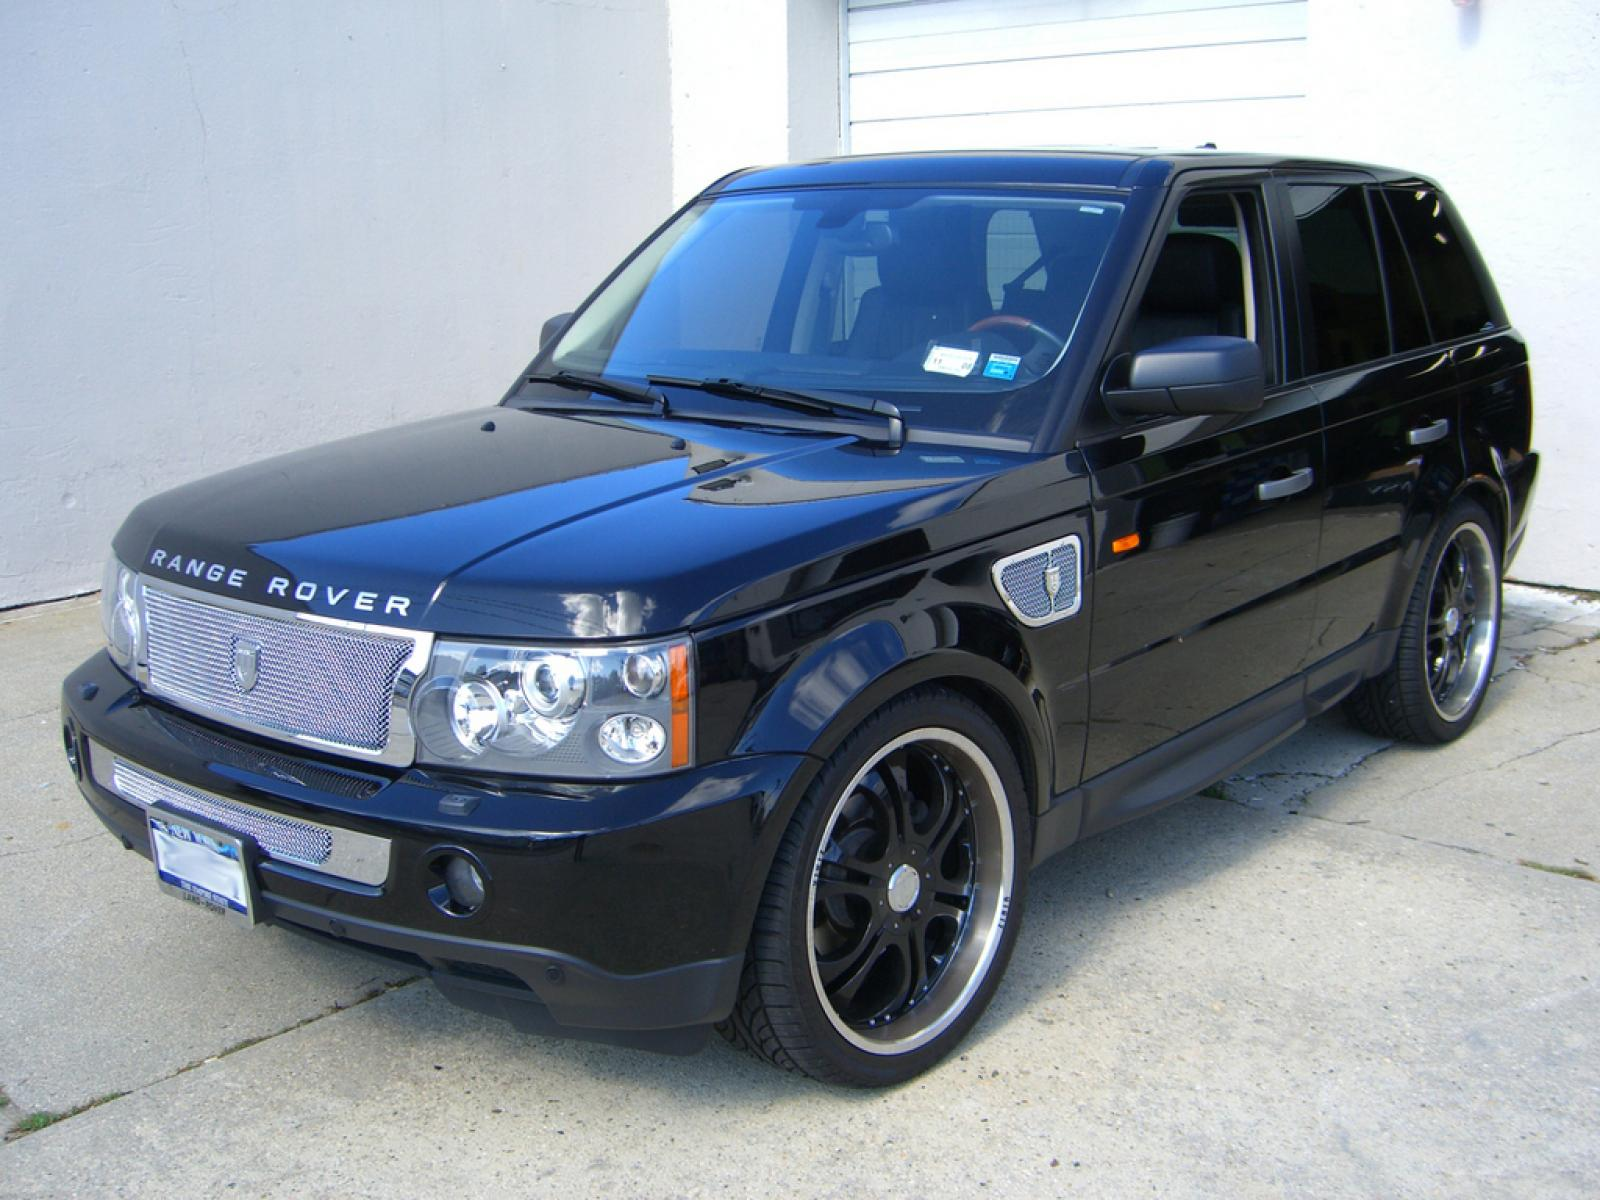 2007 land rover range rover sport information and photos zombiedrive. Black Bedroom Furniture Sets. Home Design Ideas